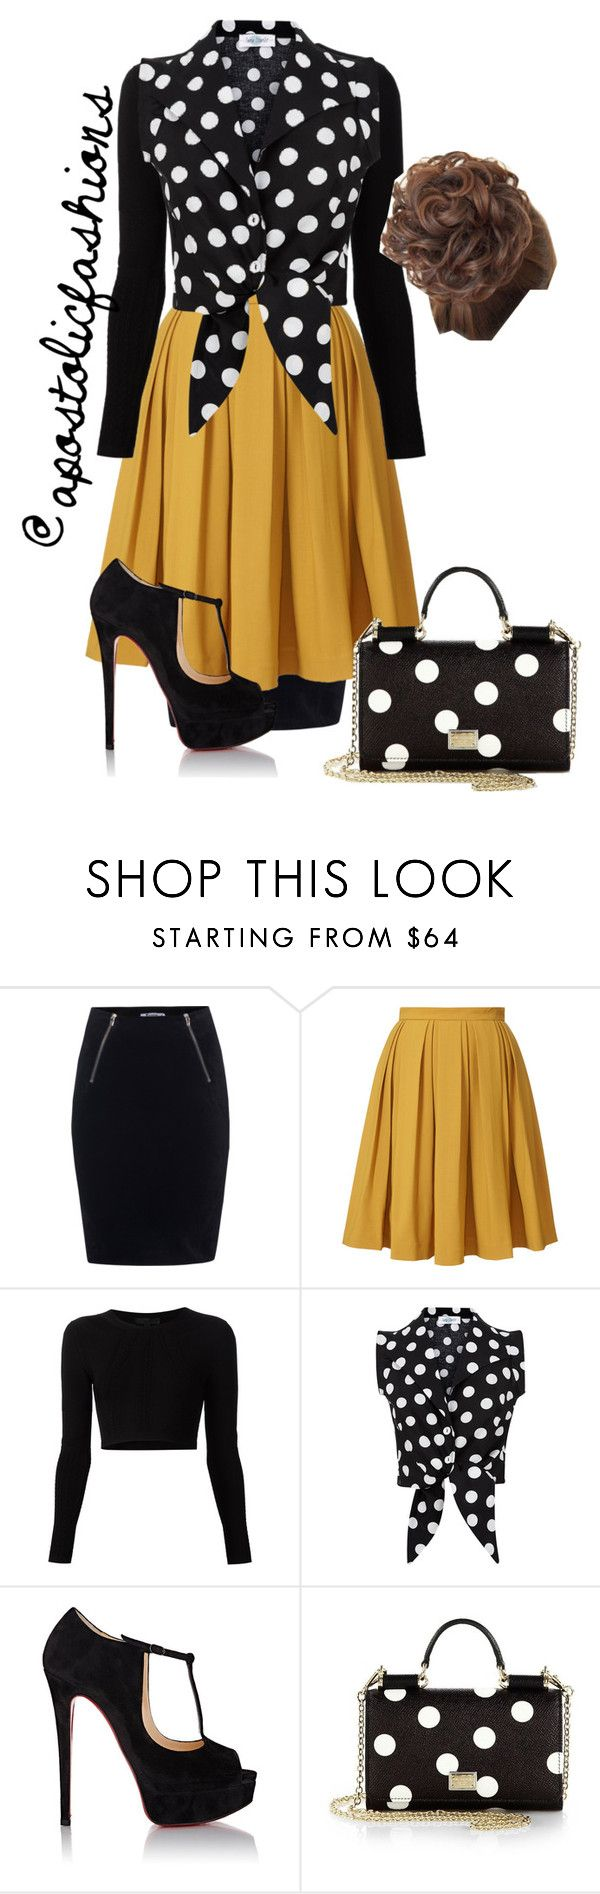 """Apostolic Fashions #1095"" by apostolicfashions on Polyvore featuring T By Alexander Wang, Orla Kiely, Cushnie Et Ochs, Christian Louboutin, Dolce&Gabbana, women's clothing, women, female, woman and misses"